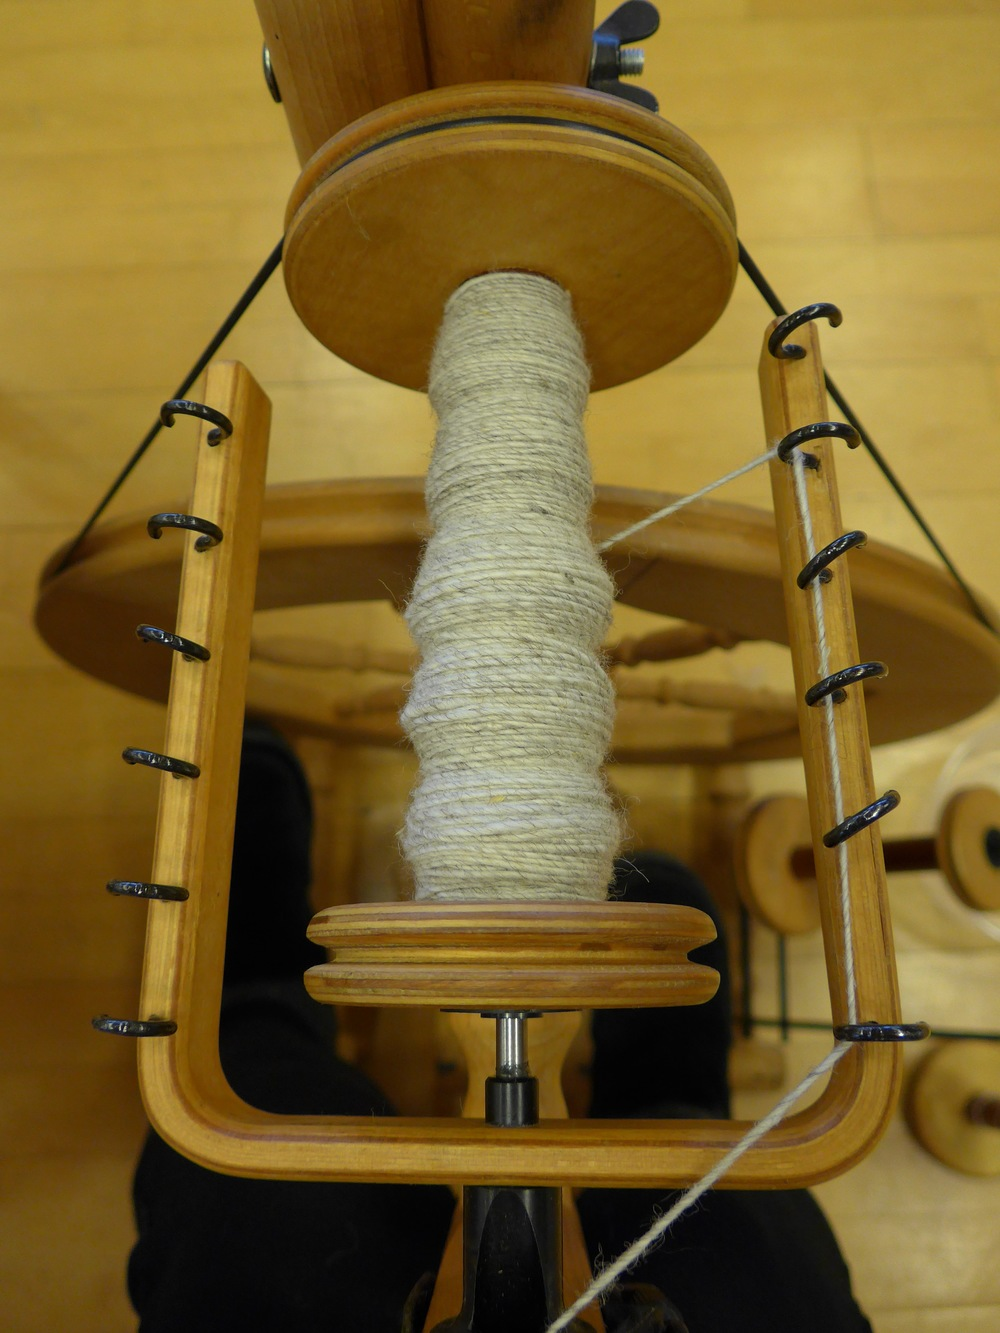 Surprise!  More spinning.